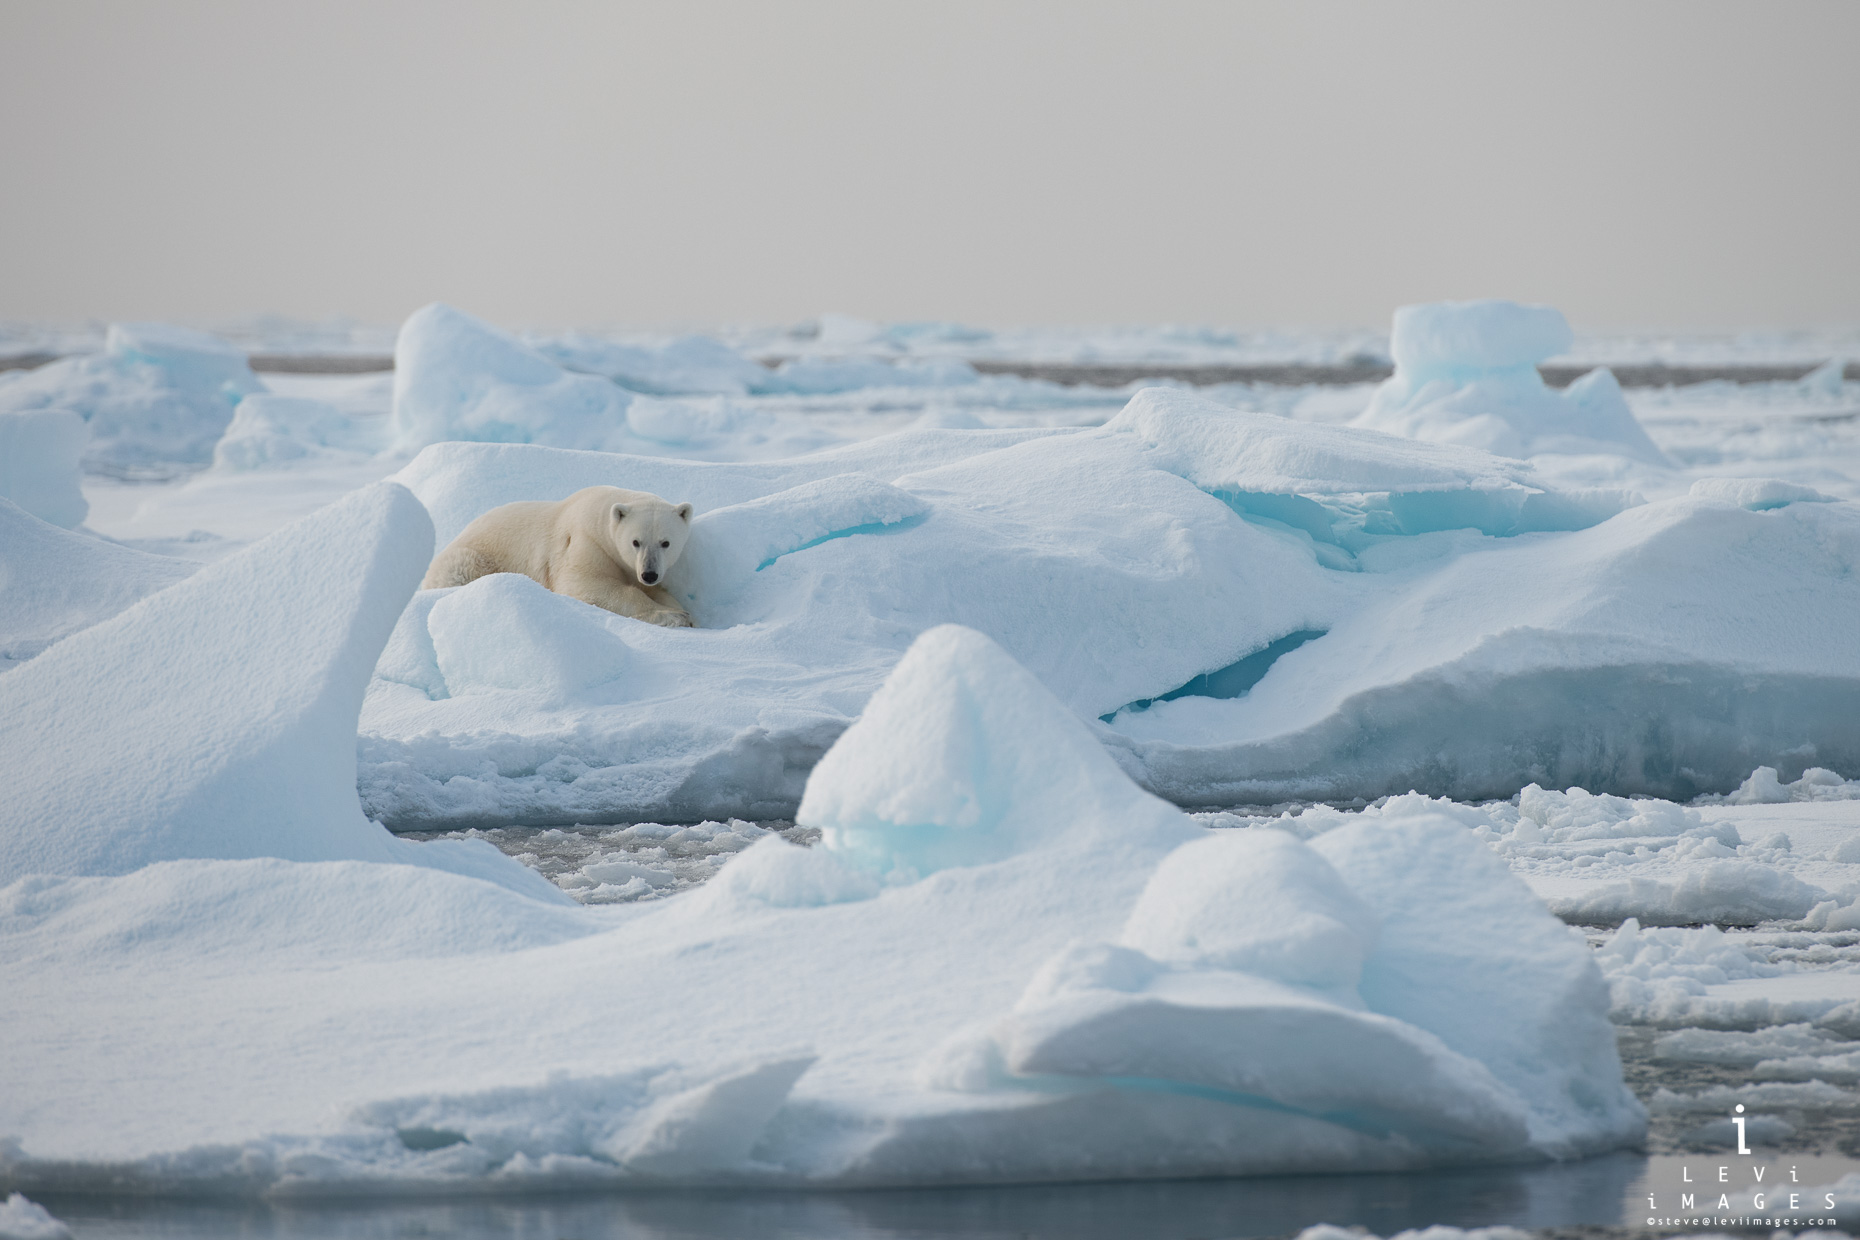 Polar bear (Ursus maritimus) rests on ice fragment. Svalbard, Norway